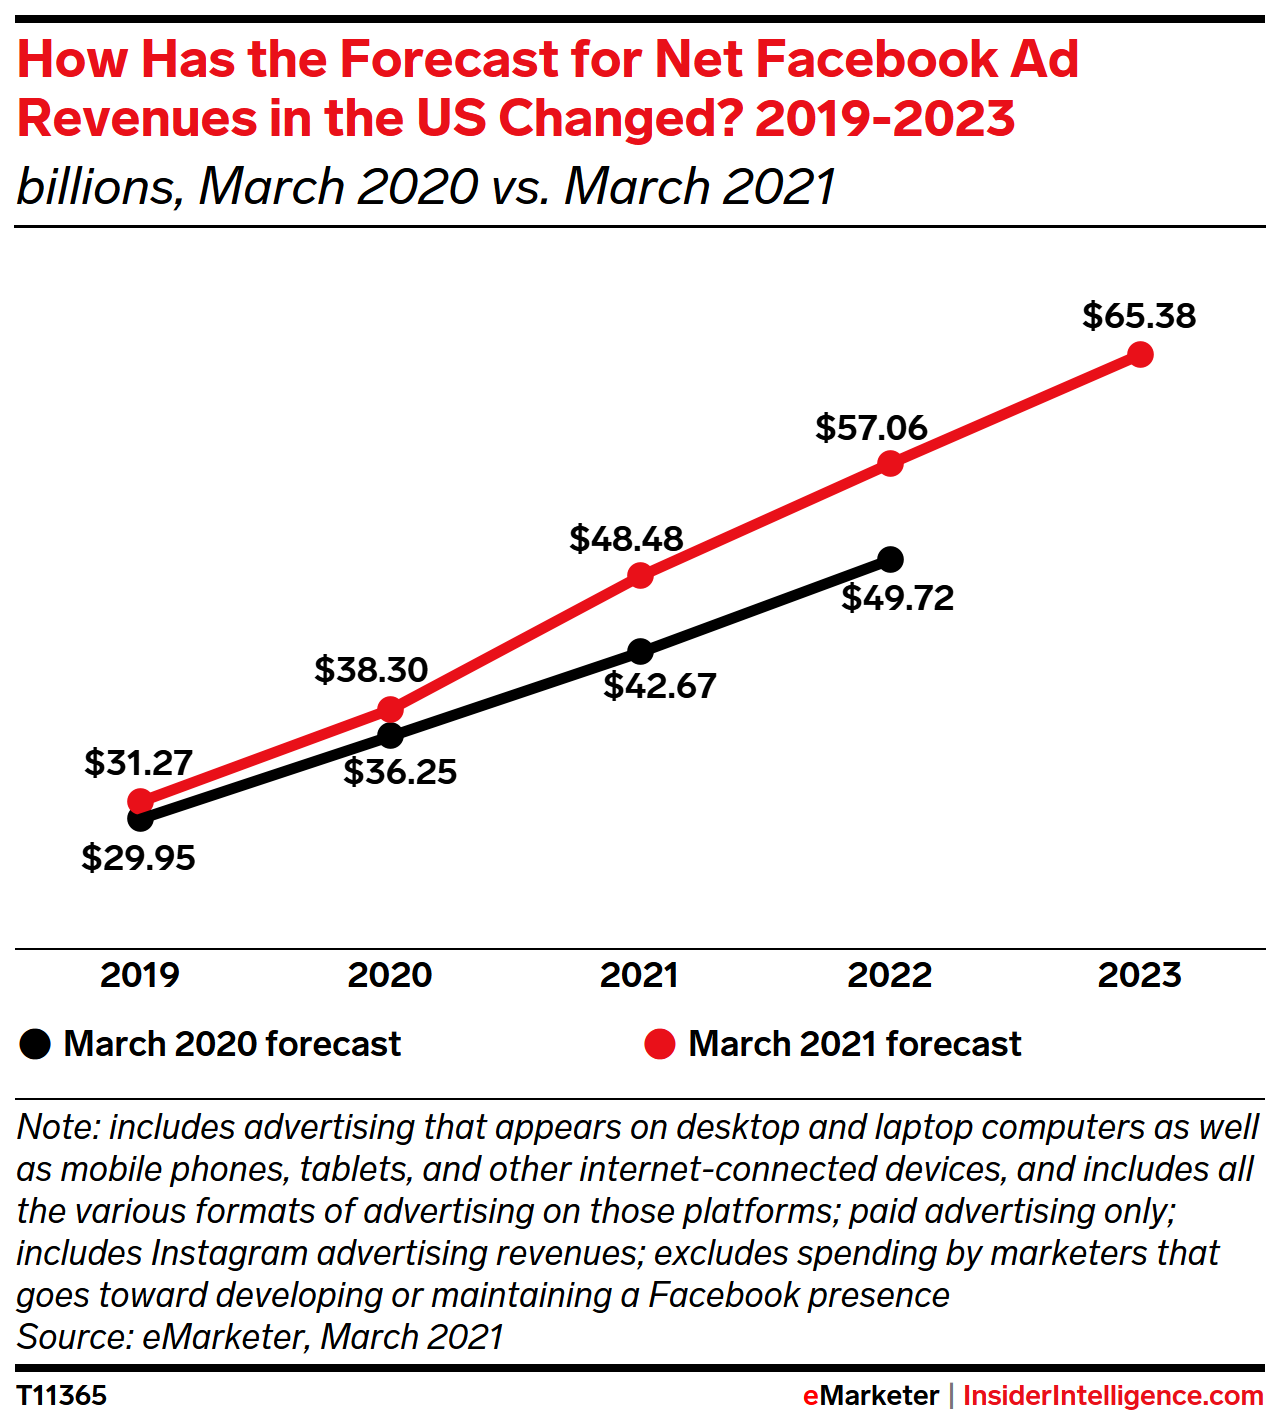 How Has the Forecast for Net Facebook Ad Revenues in the US Changed? 2019-2023 (billions)